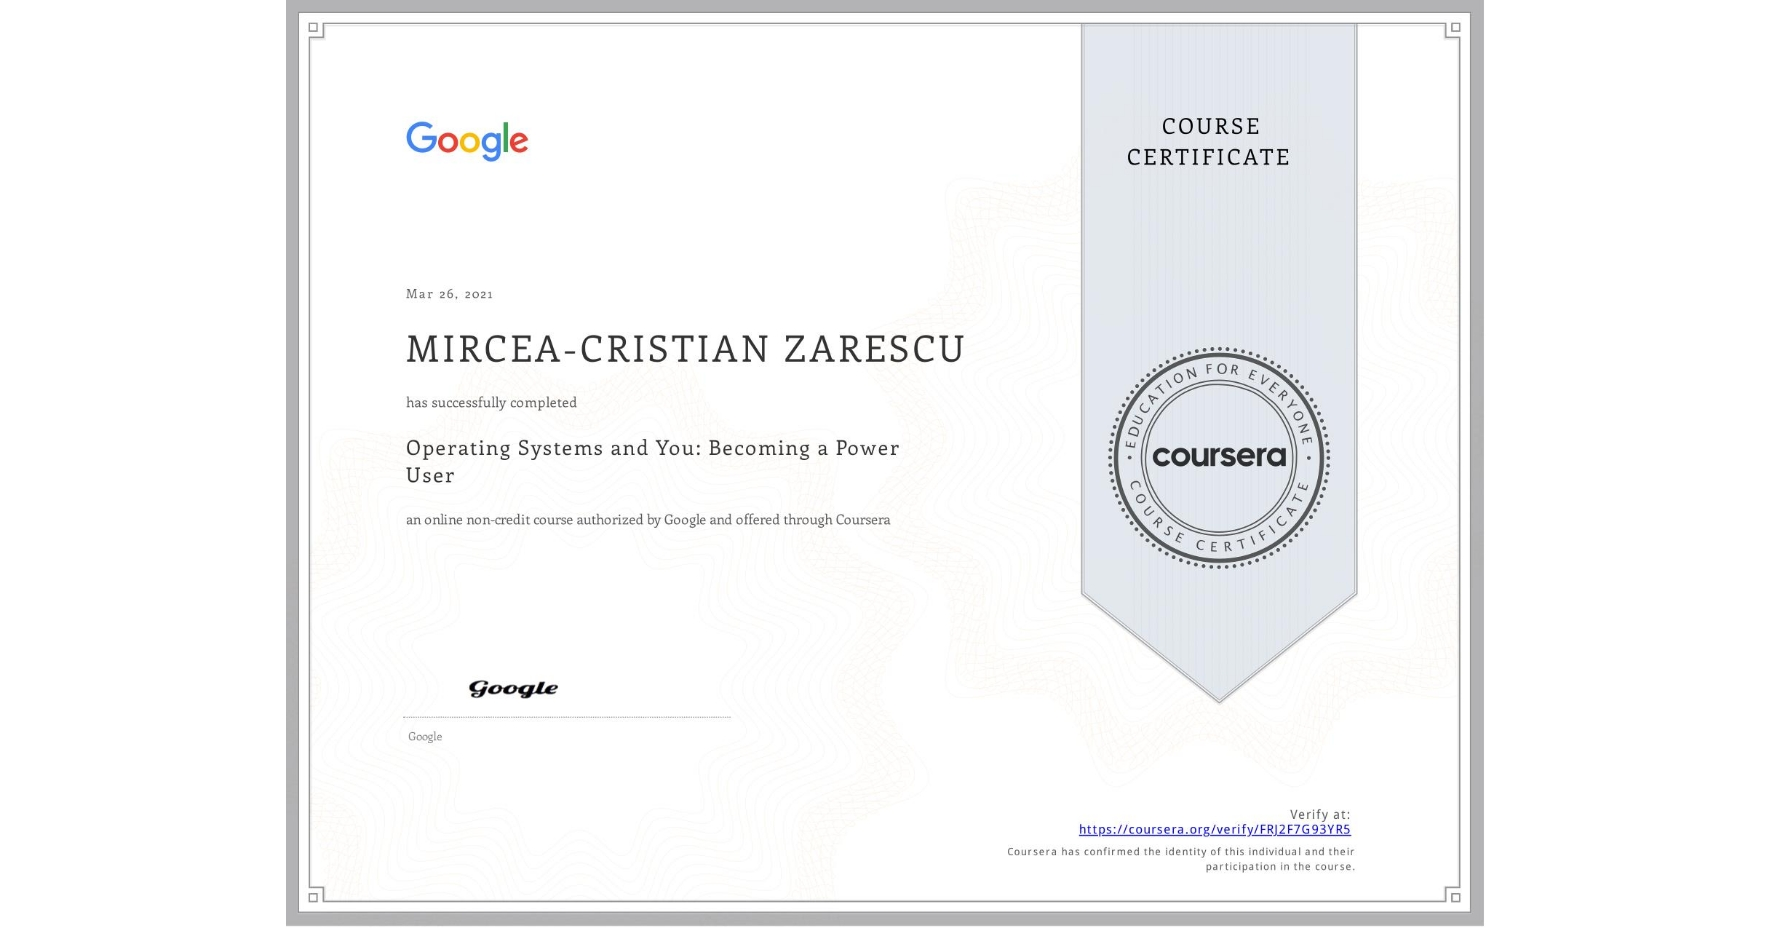 View certificate for MIRCEA-CRISTIAN ZARESCU, Operating Systems and You: Becoming a Power User, an online non-credit course authorized by Google and offered through Coursera